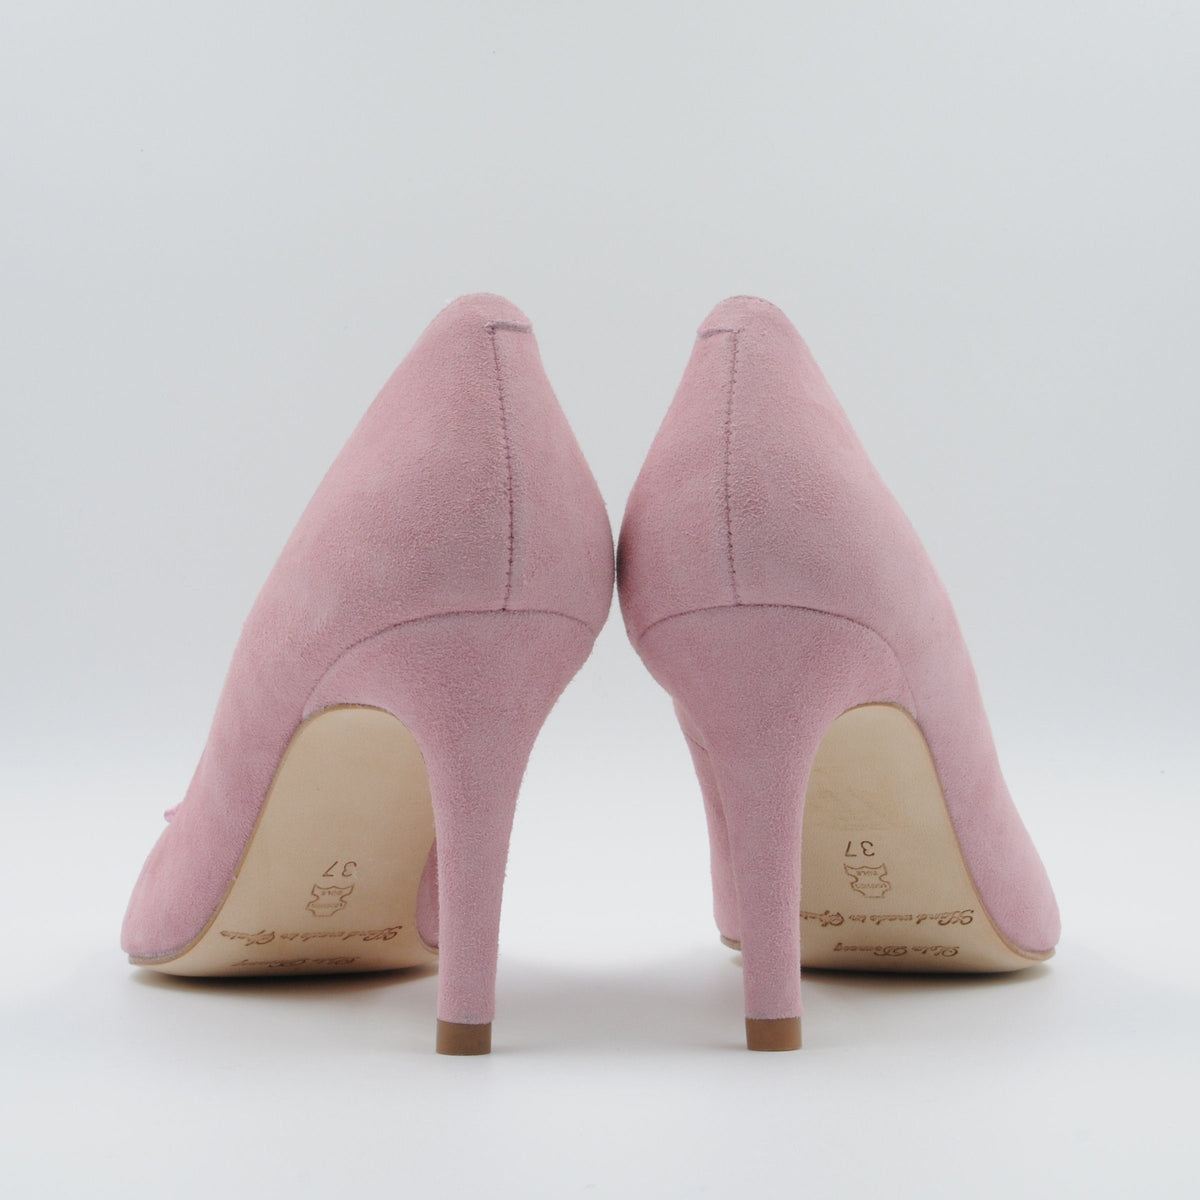 Lola Domecq LD Priscila In Pink Handcrafted suede high heels